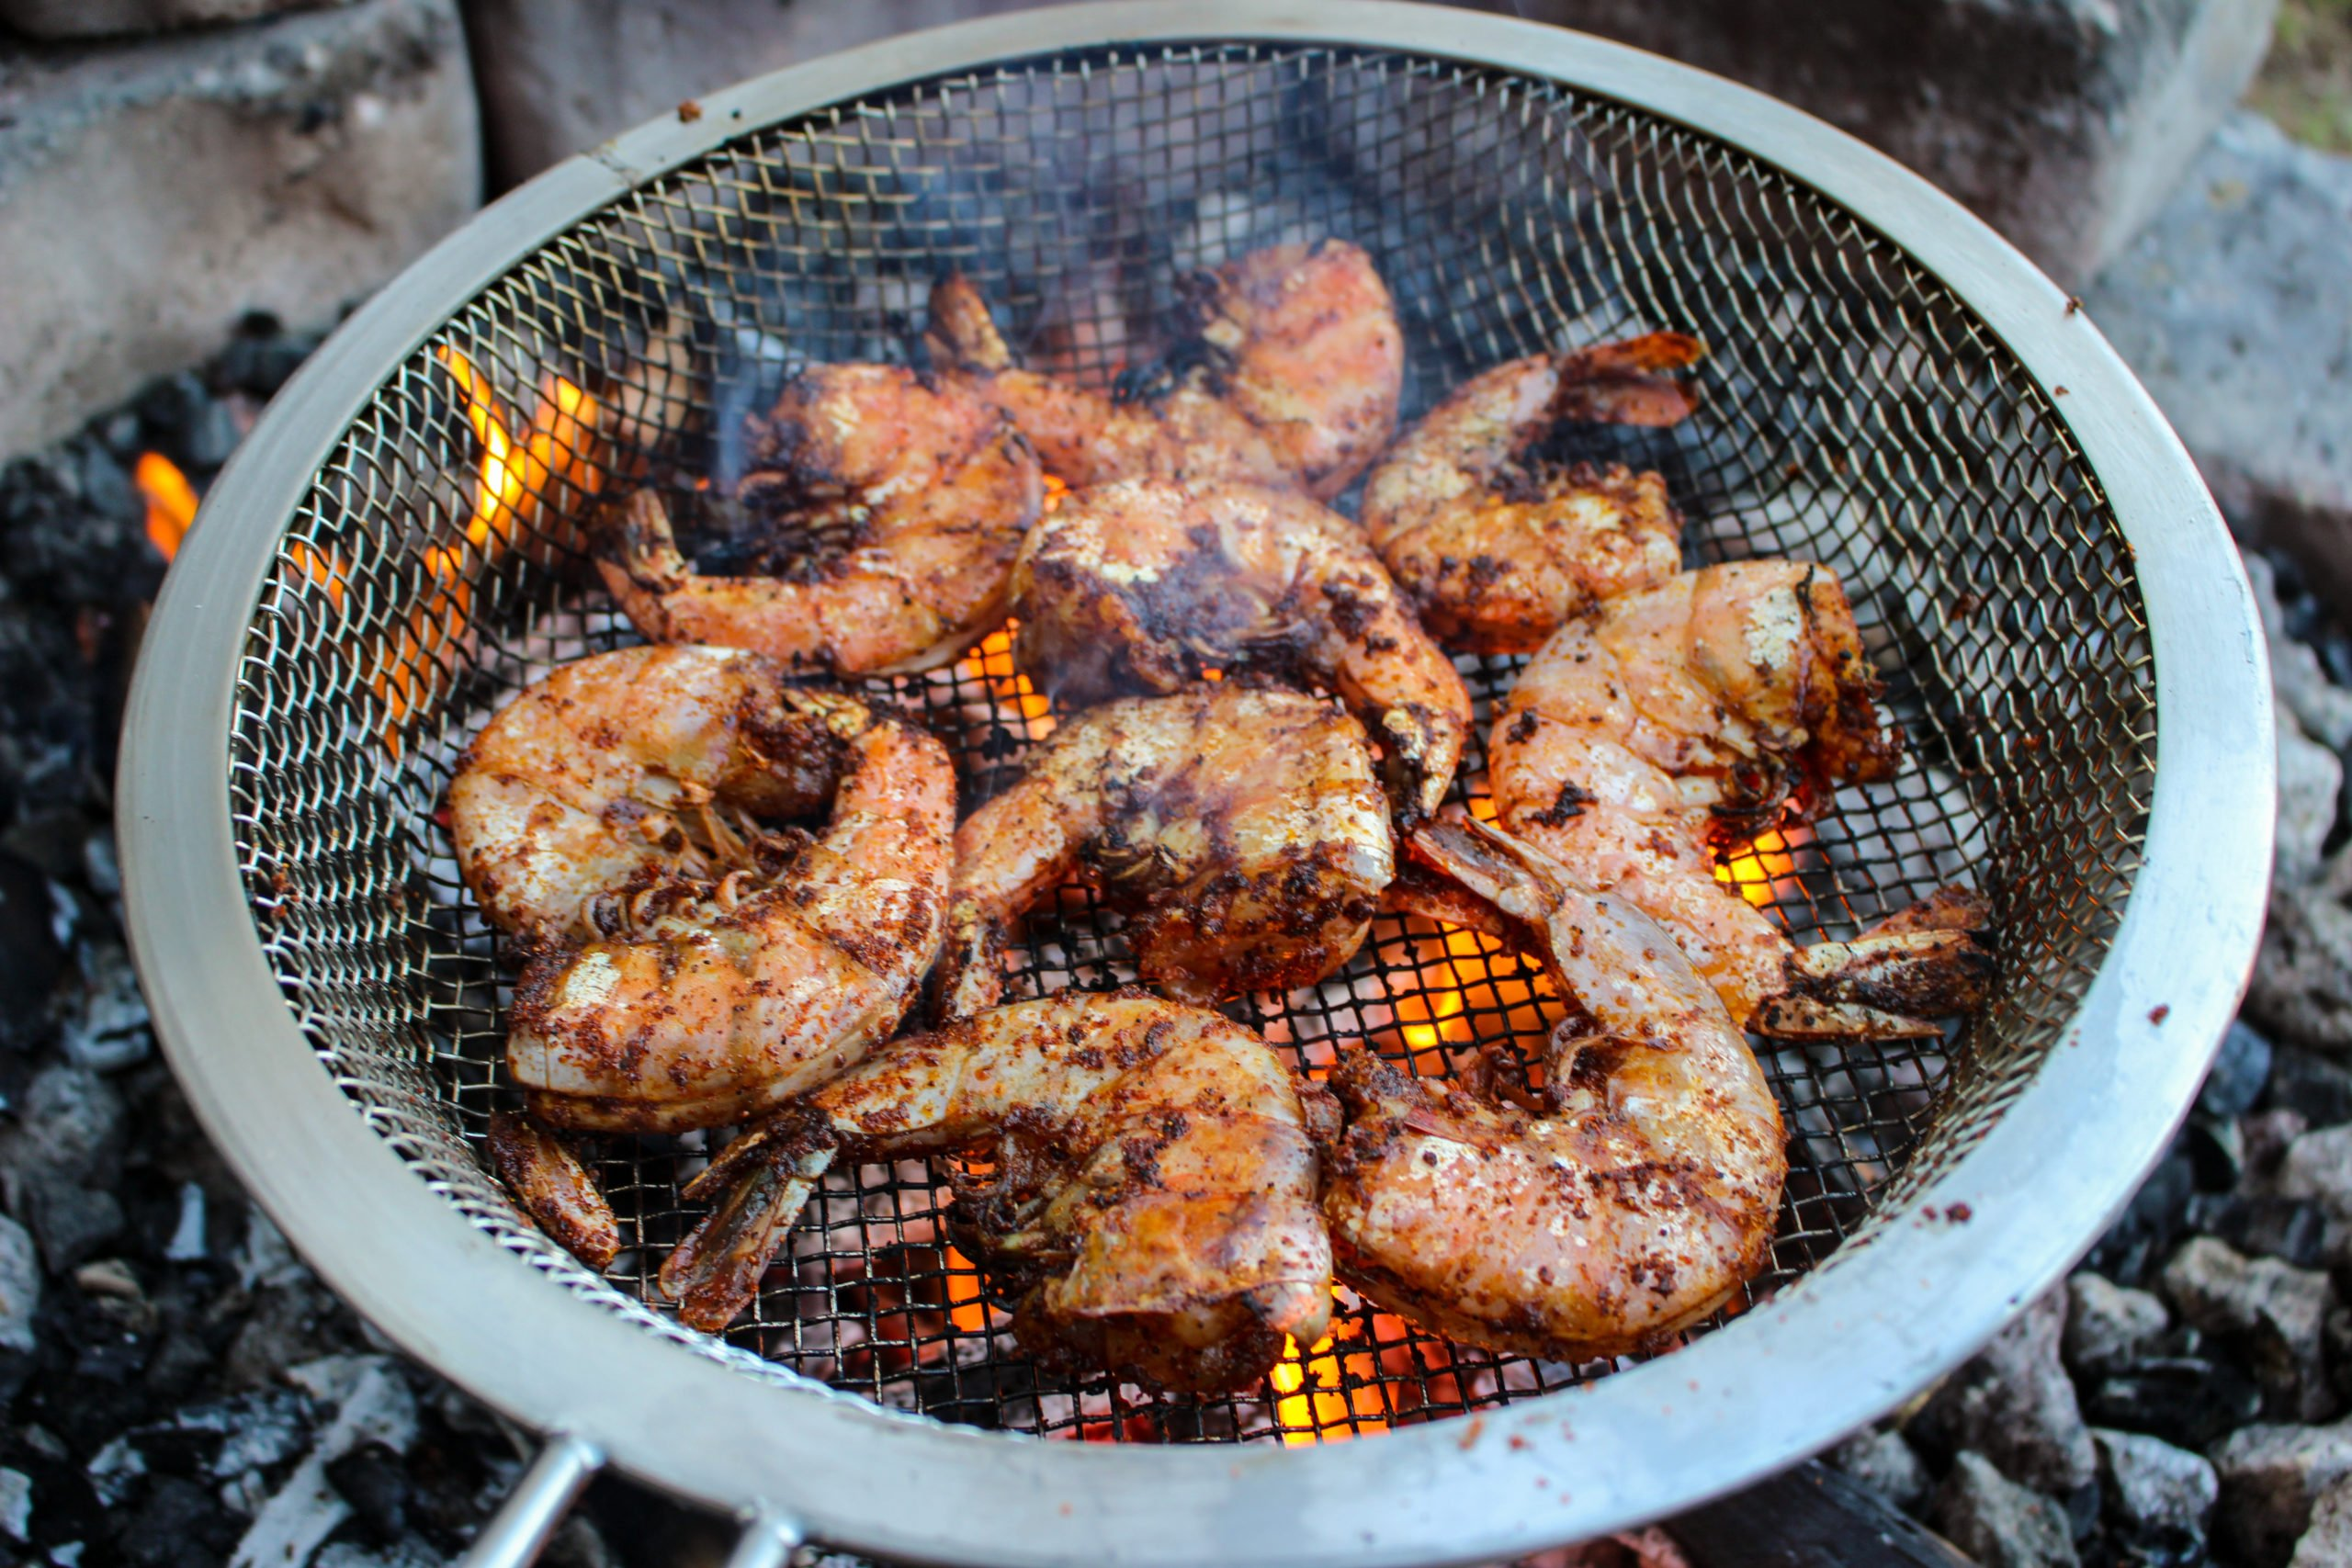 Nashville Hot Grilled Shrimp flipped and almost done cooking.